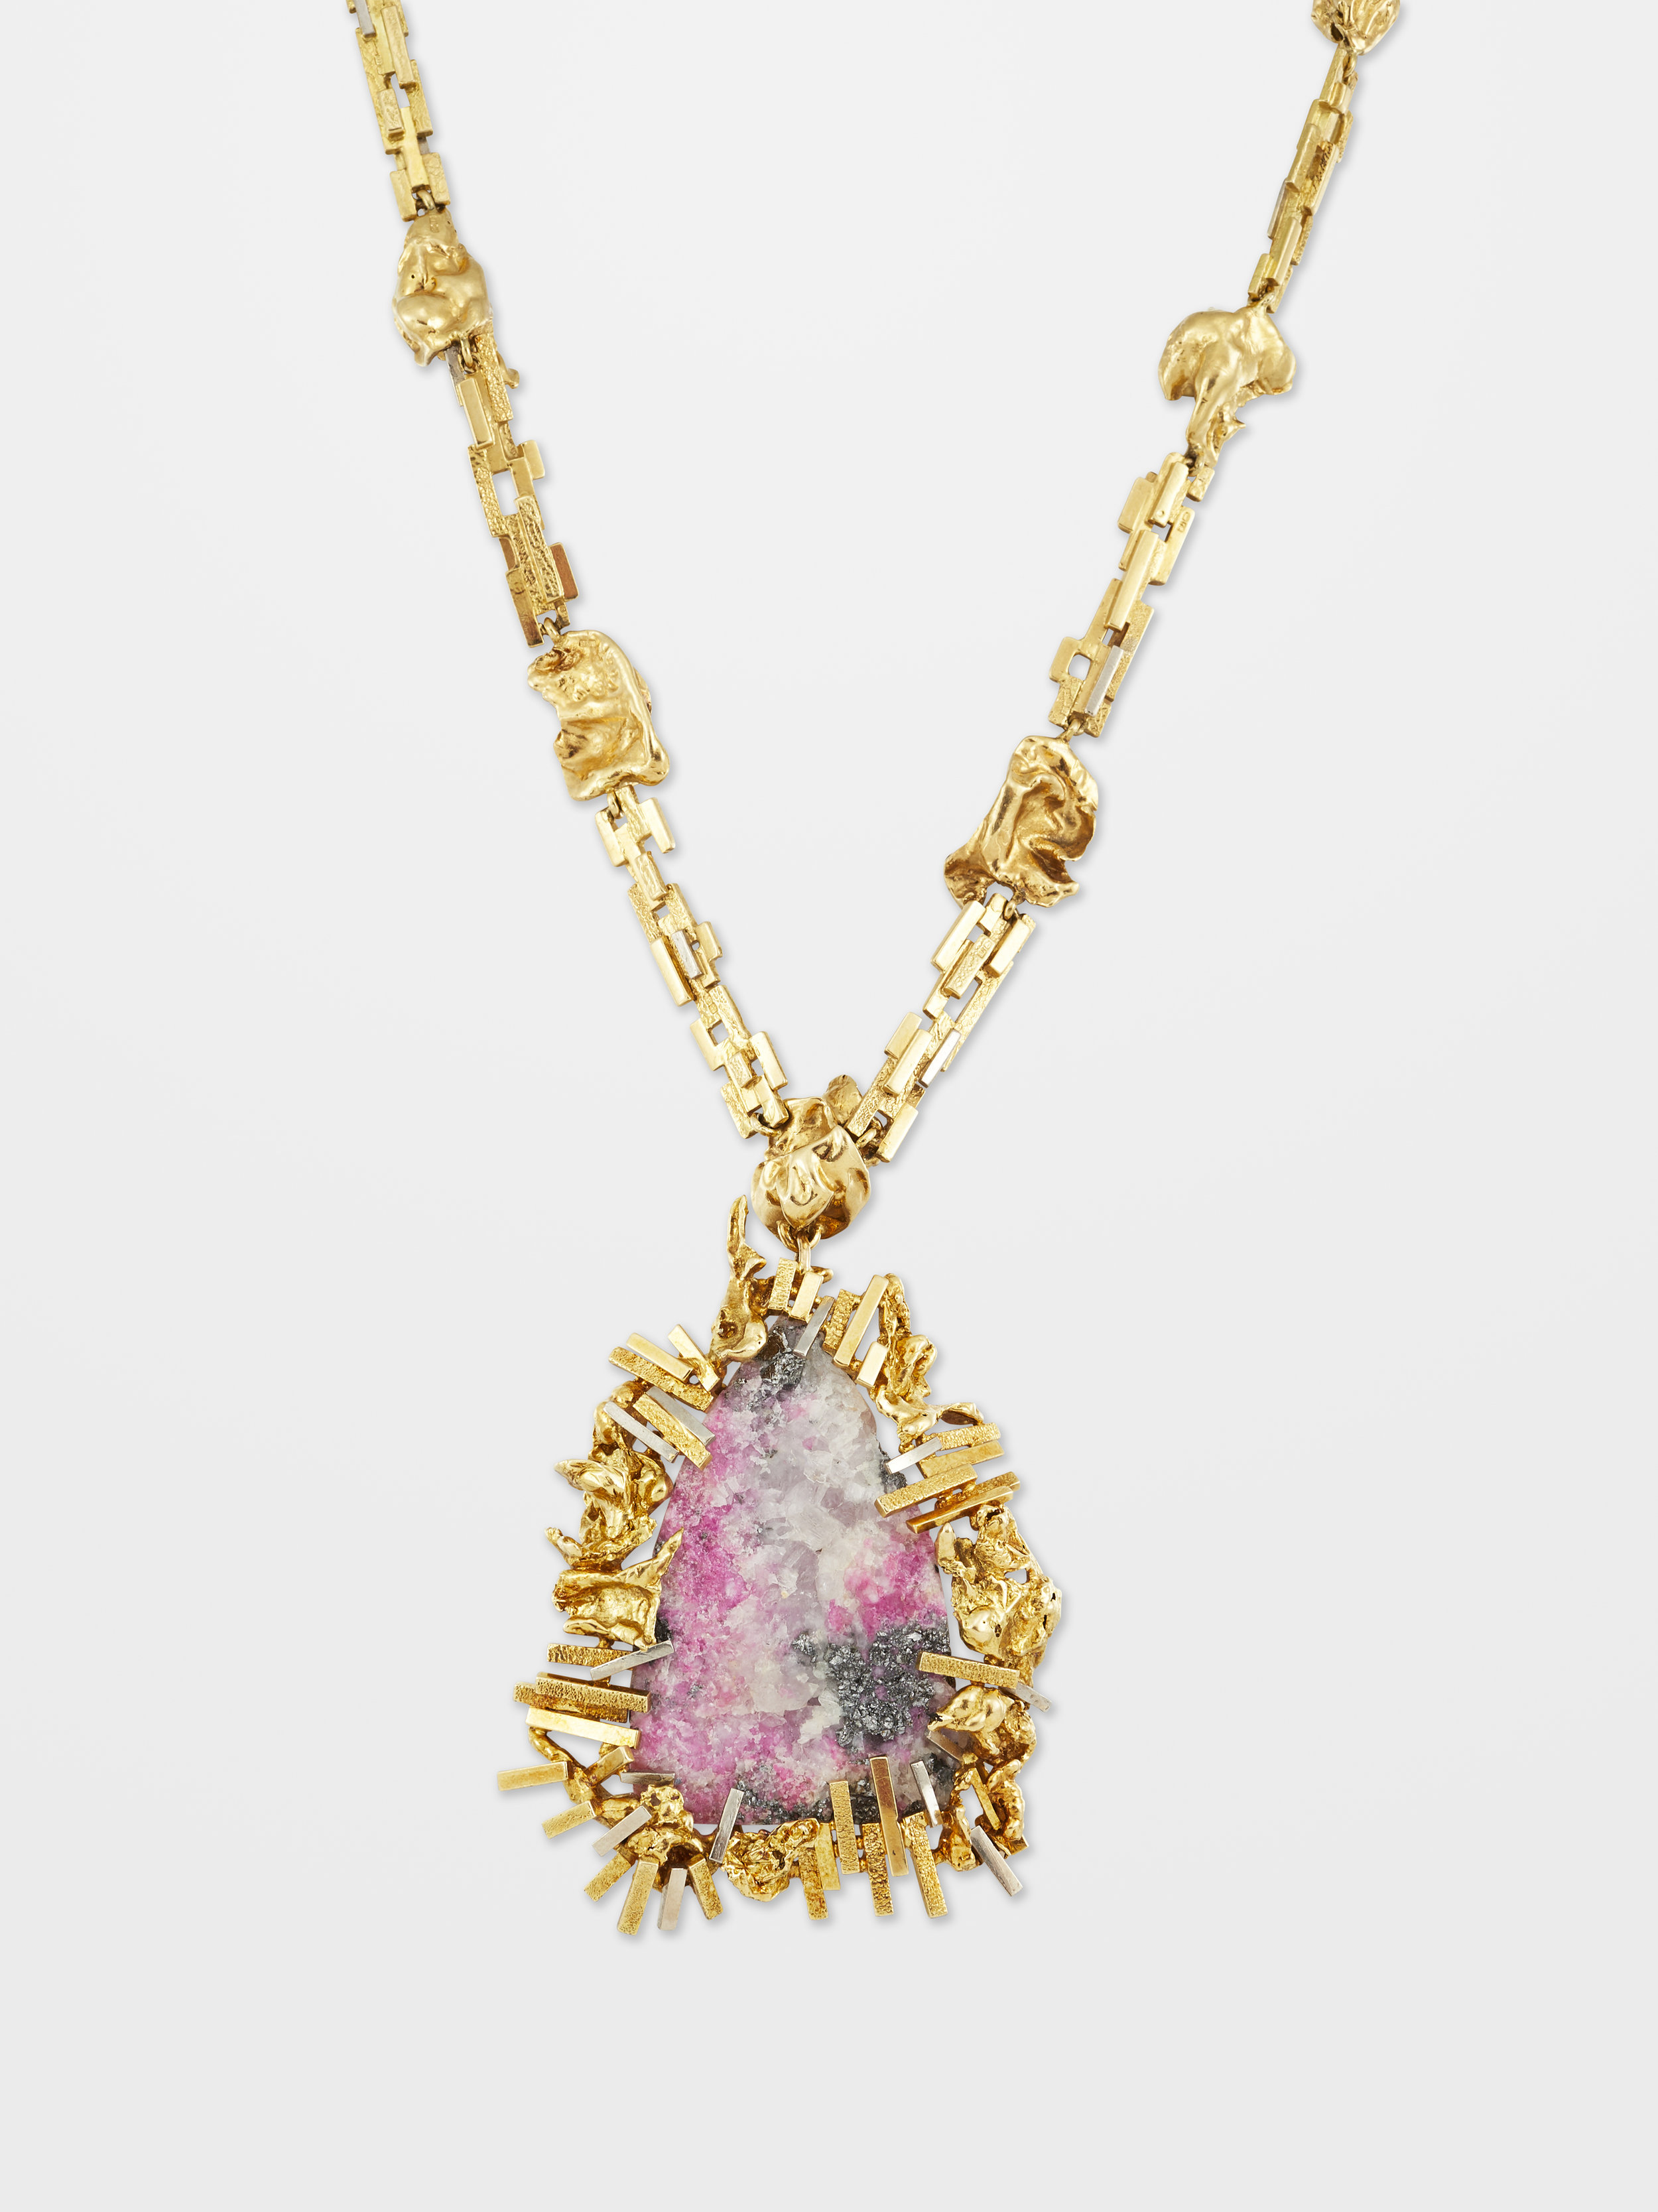 Gilian Packard (England 1938-1997)A rhodochrosite, calcite and pyrite two tone gold pendant on detachable long chain, 1967, English - Maker's mark GEPLondon hallmarks on bothWeight pendant: 59.6grams, chain: 74.9gramsL pendant: 6.8cm, L necklace: 65.7cm